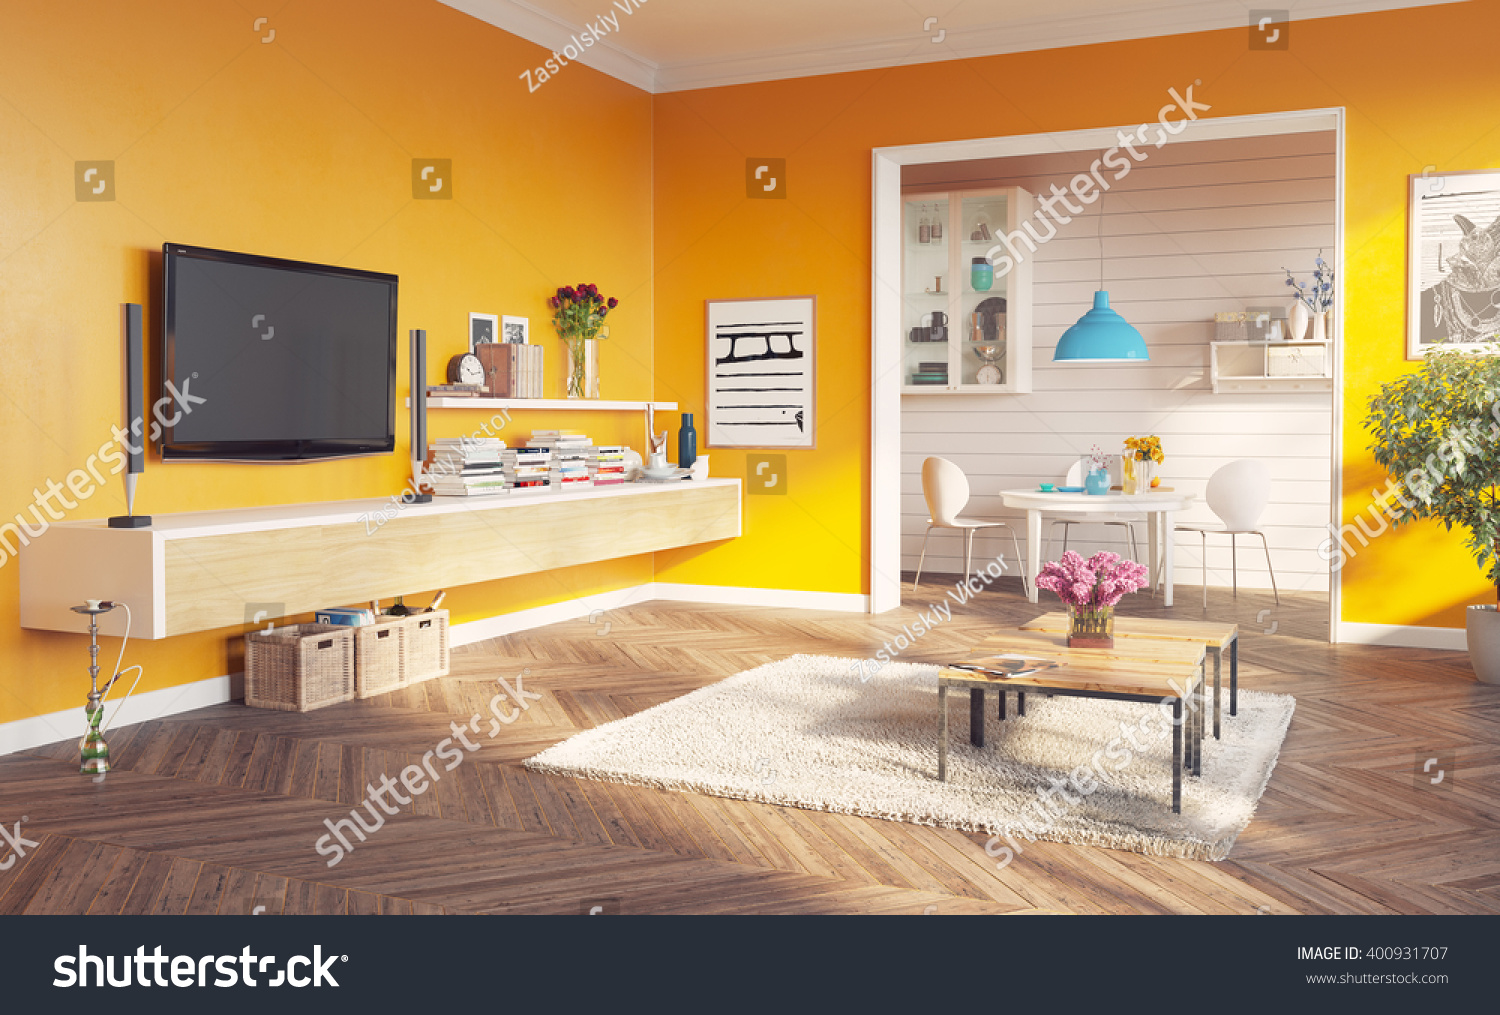 Modern Living Room Interior 3d Rendering Stock